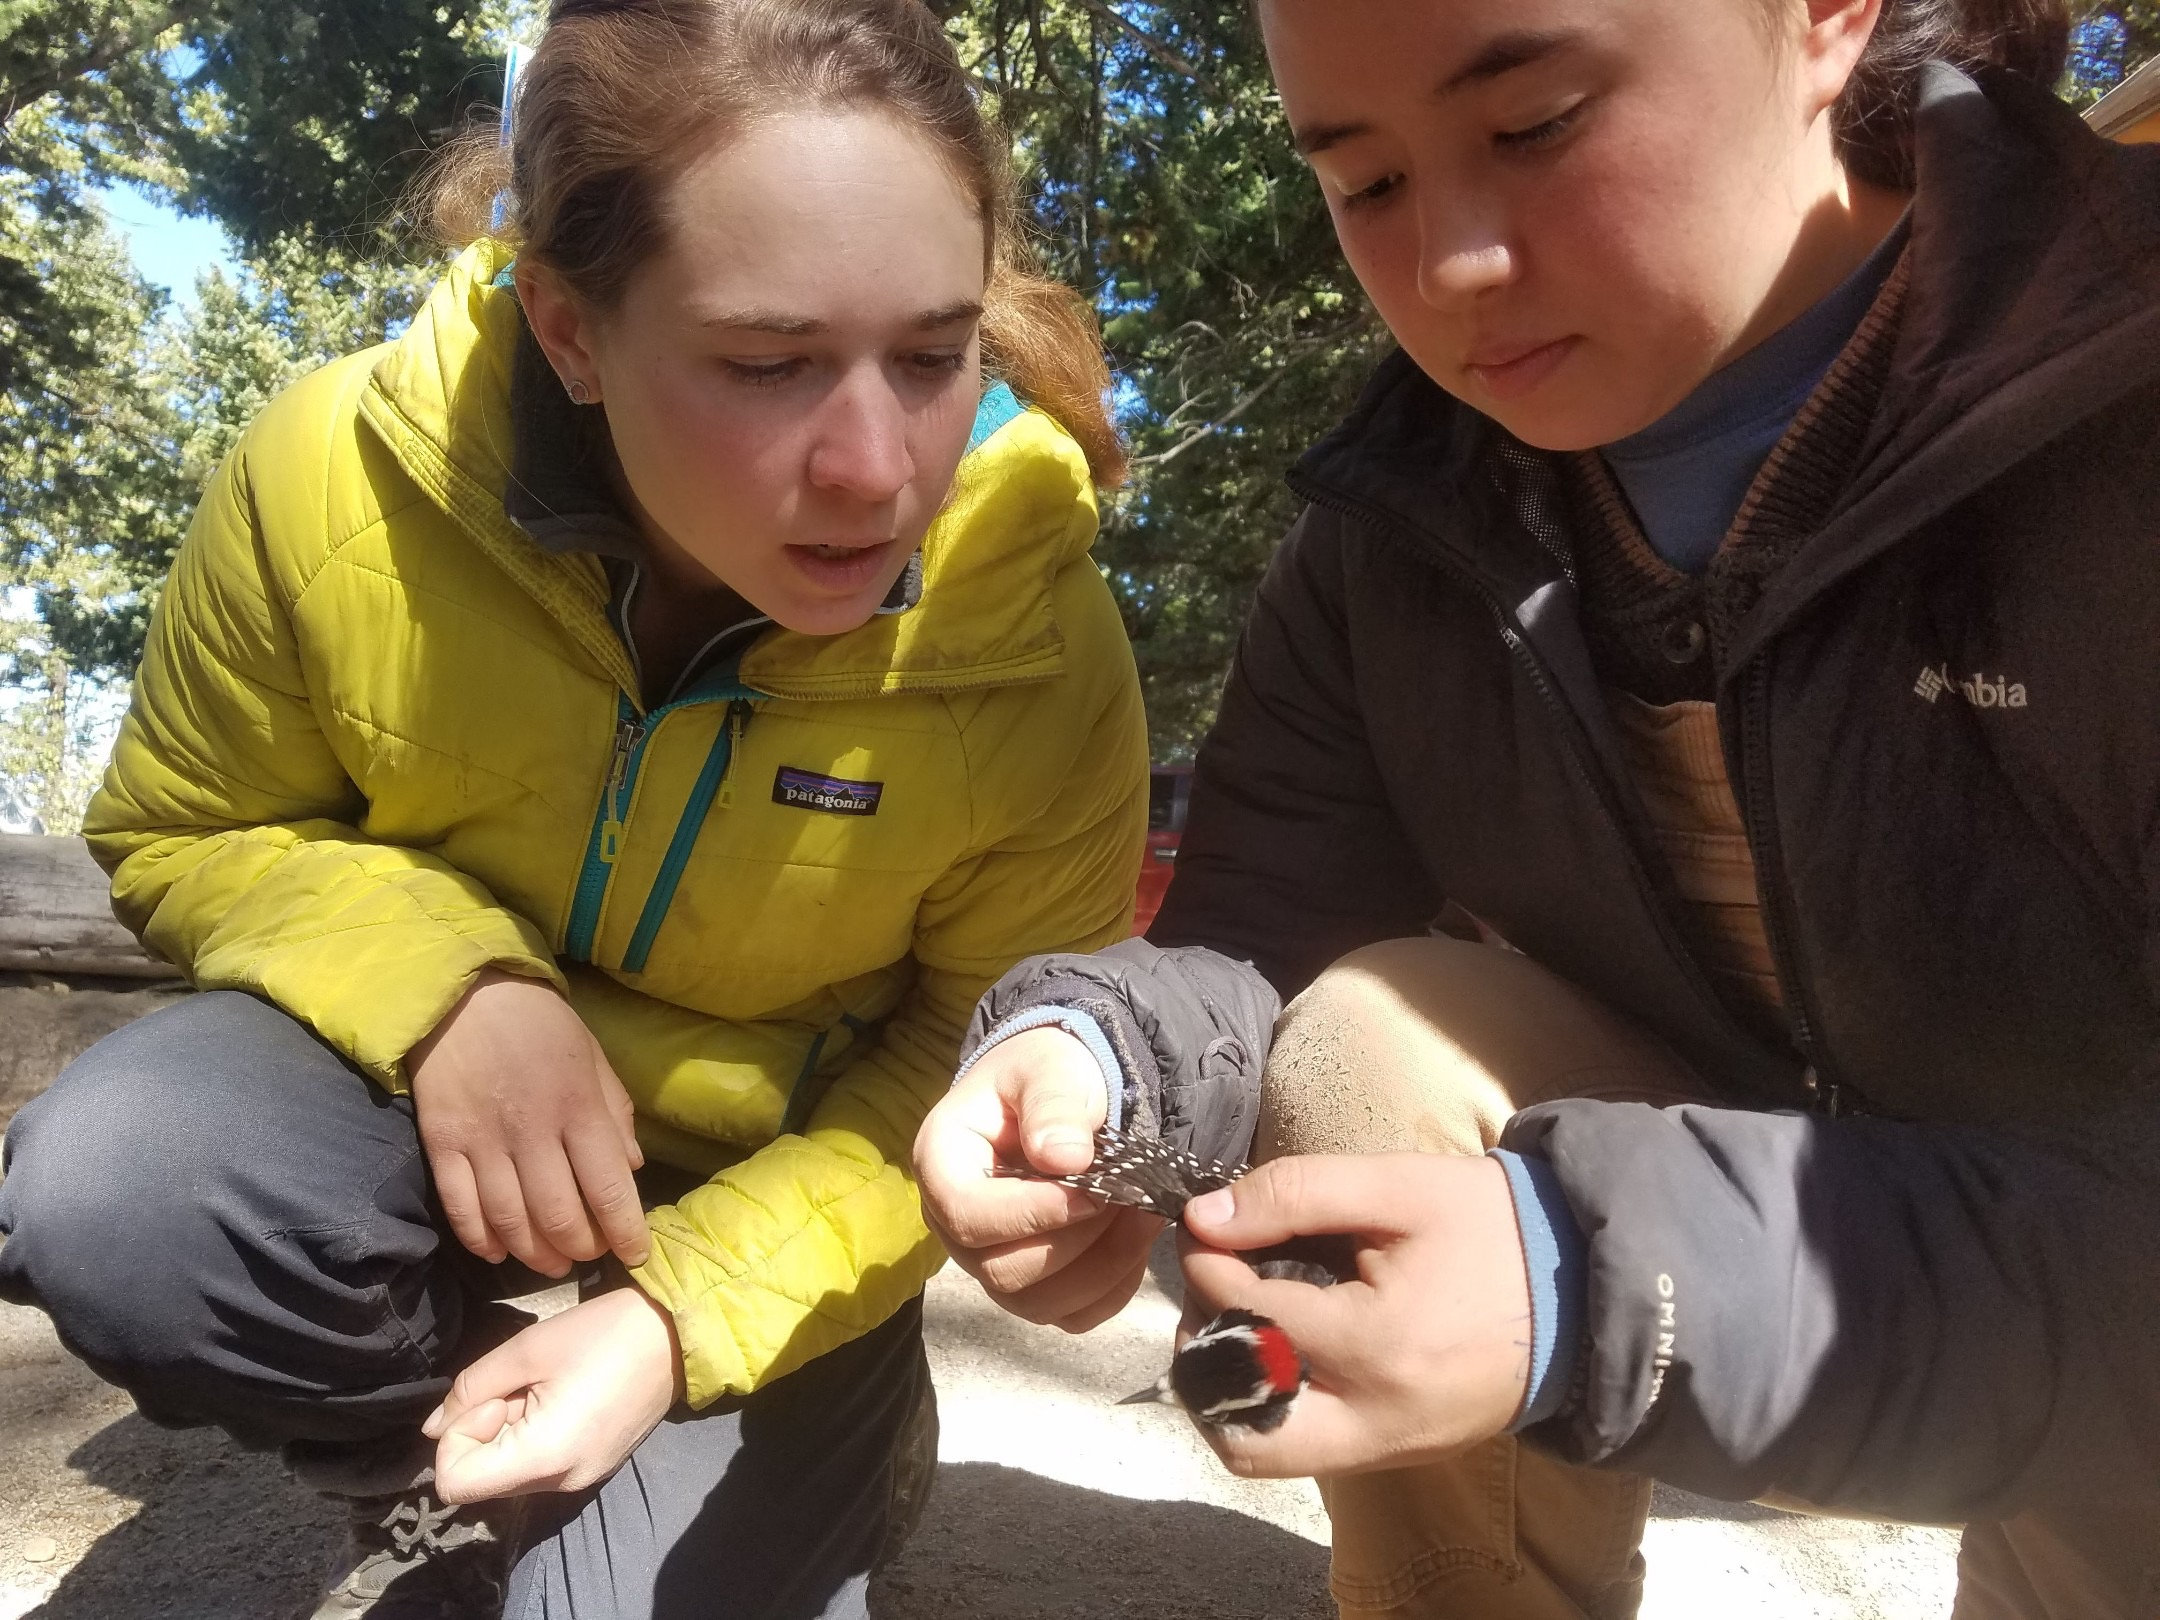 two female biologists look intently at a small woodpecker that is held with outstretched wing